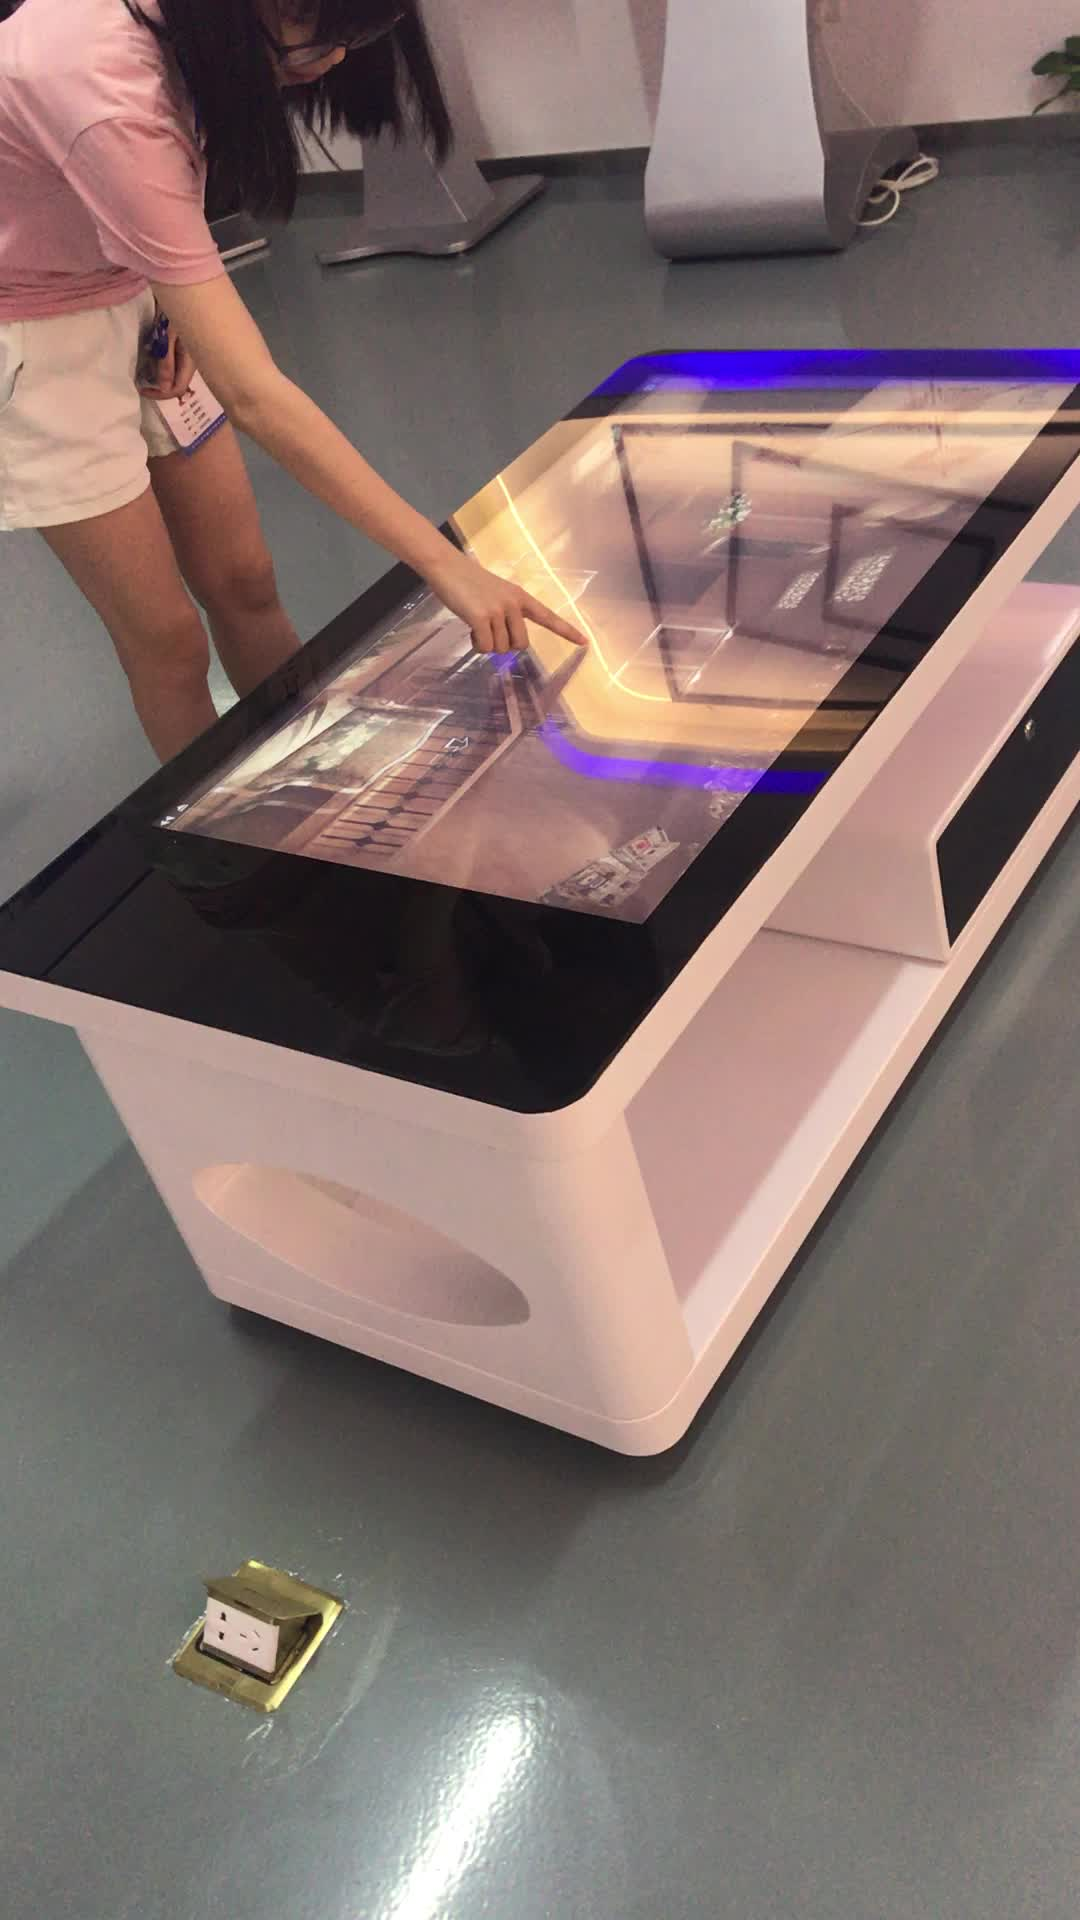 Touchwo 32 Inch Kiosk Mall Smart Interactive Multi Touch Table